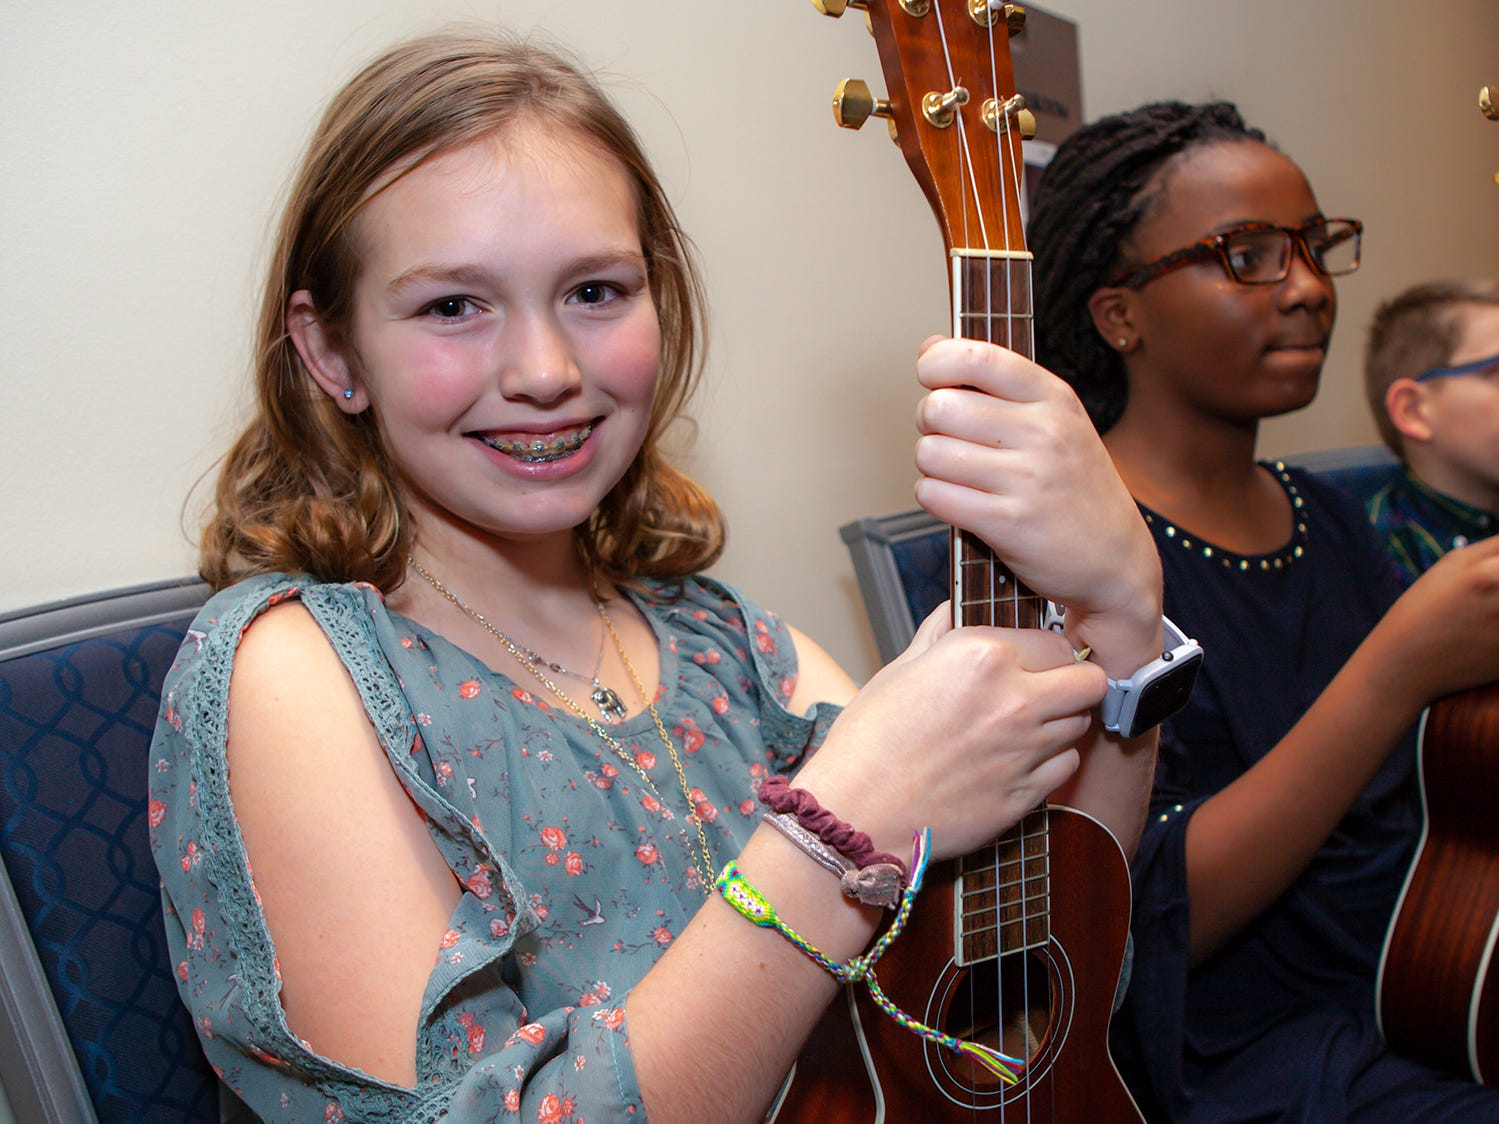 Lydia Knight, a fifth-grader member of Overall Creek Elementary's Ukulele Ensemble, at the 2019 Excellence in Education Gala, hosted by the City Schools Foundation on Friday, Jan. 25, 2019 at Stones River Country Club in Murfreesboro.